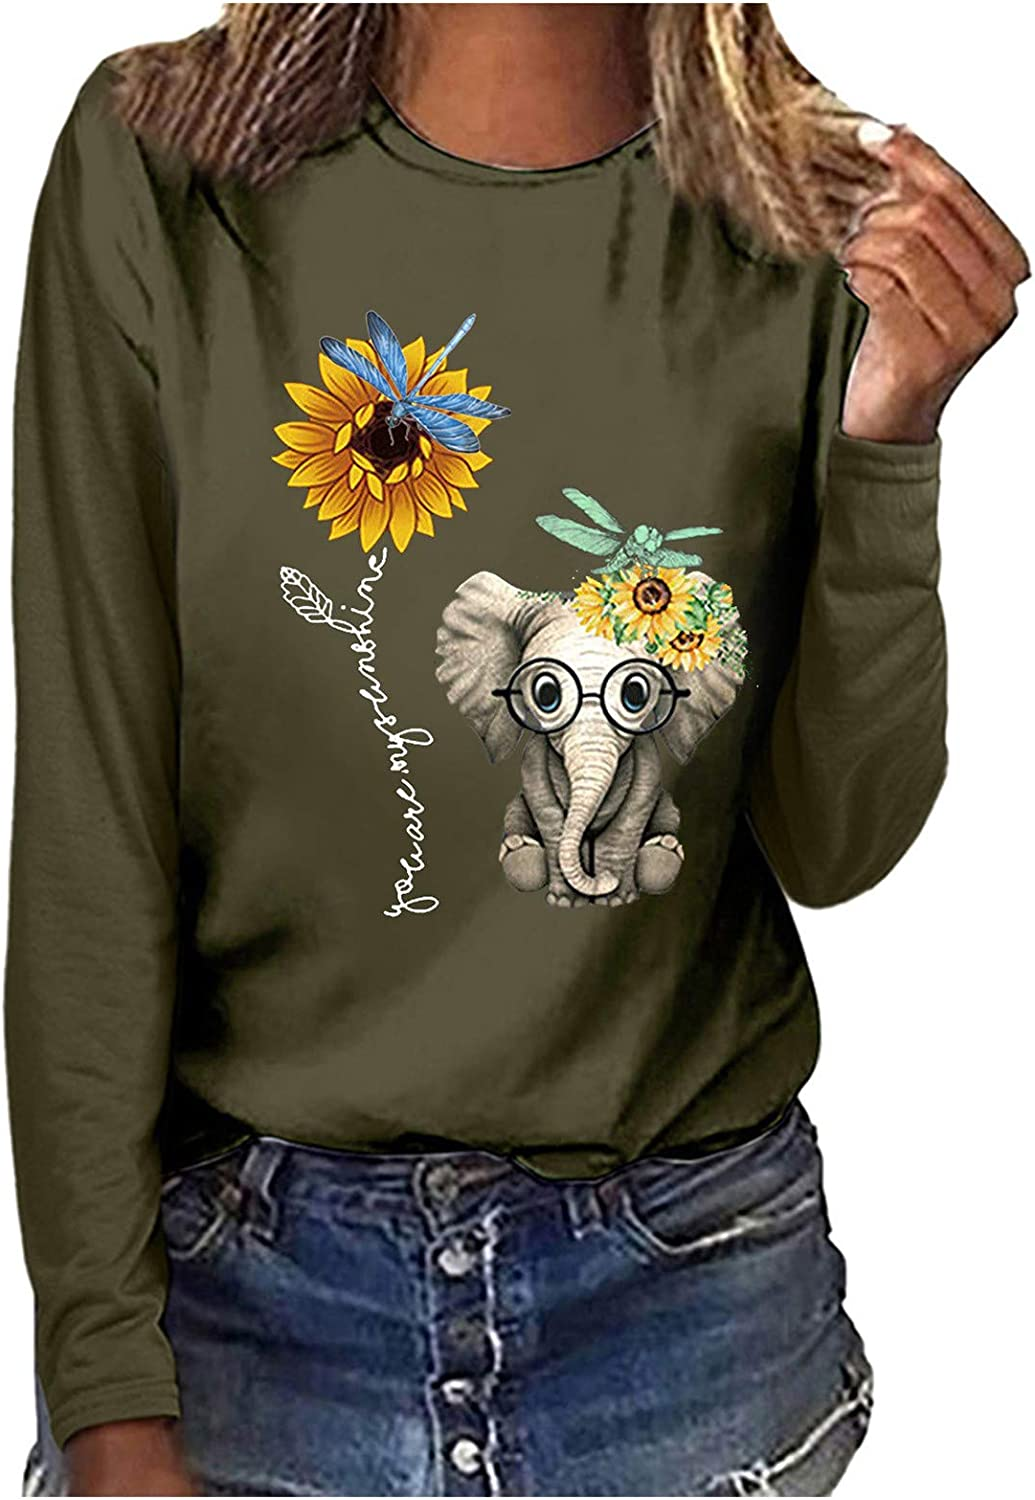 POLLYANNA KEONG Long Sleeve Tops for Women,Womens Vintage Graphic Pullover Sweatshirt Long Sleeve Loose Shirts Tops